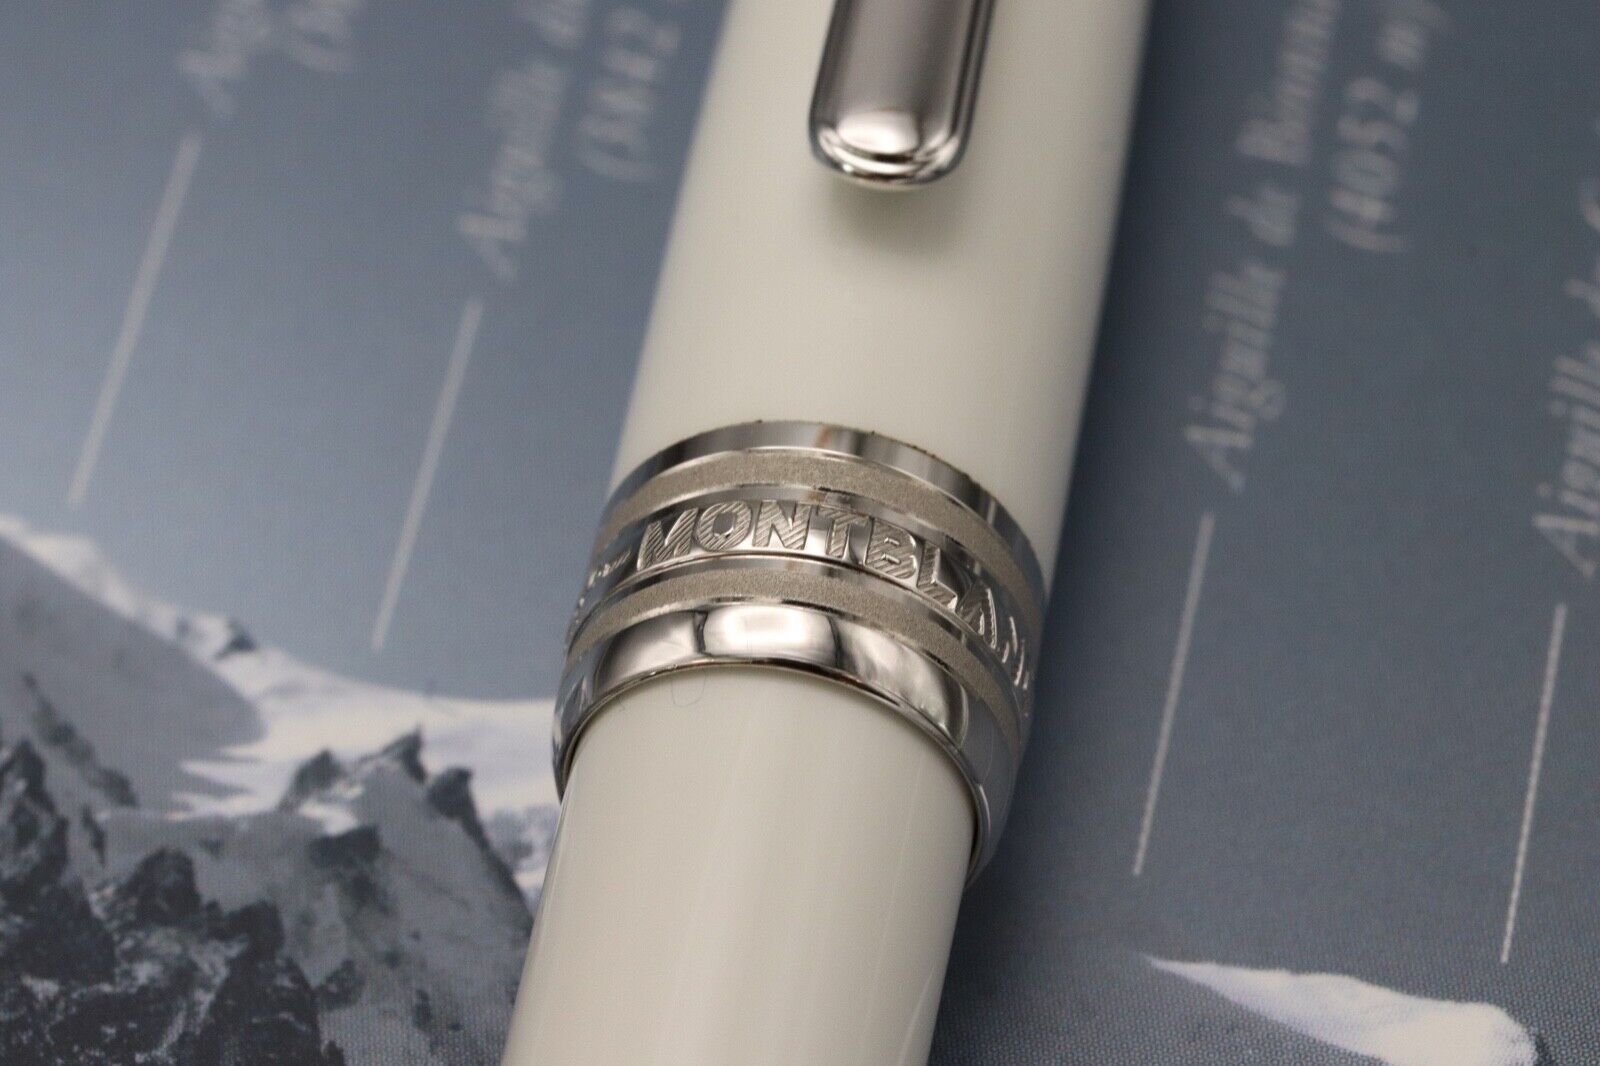 Montblanc Meisterstuck 163 Classique Tribute White Solitaire Rollerball Pen 6